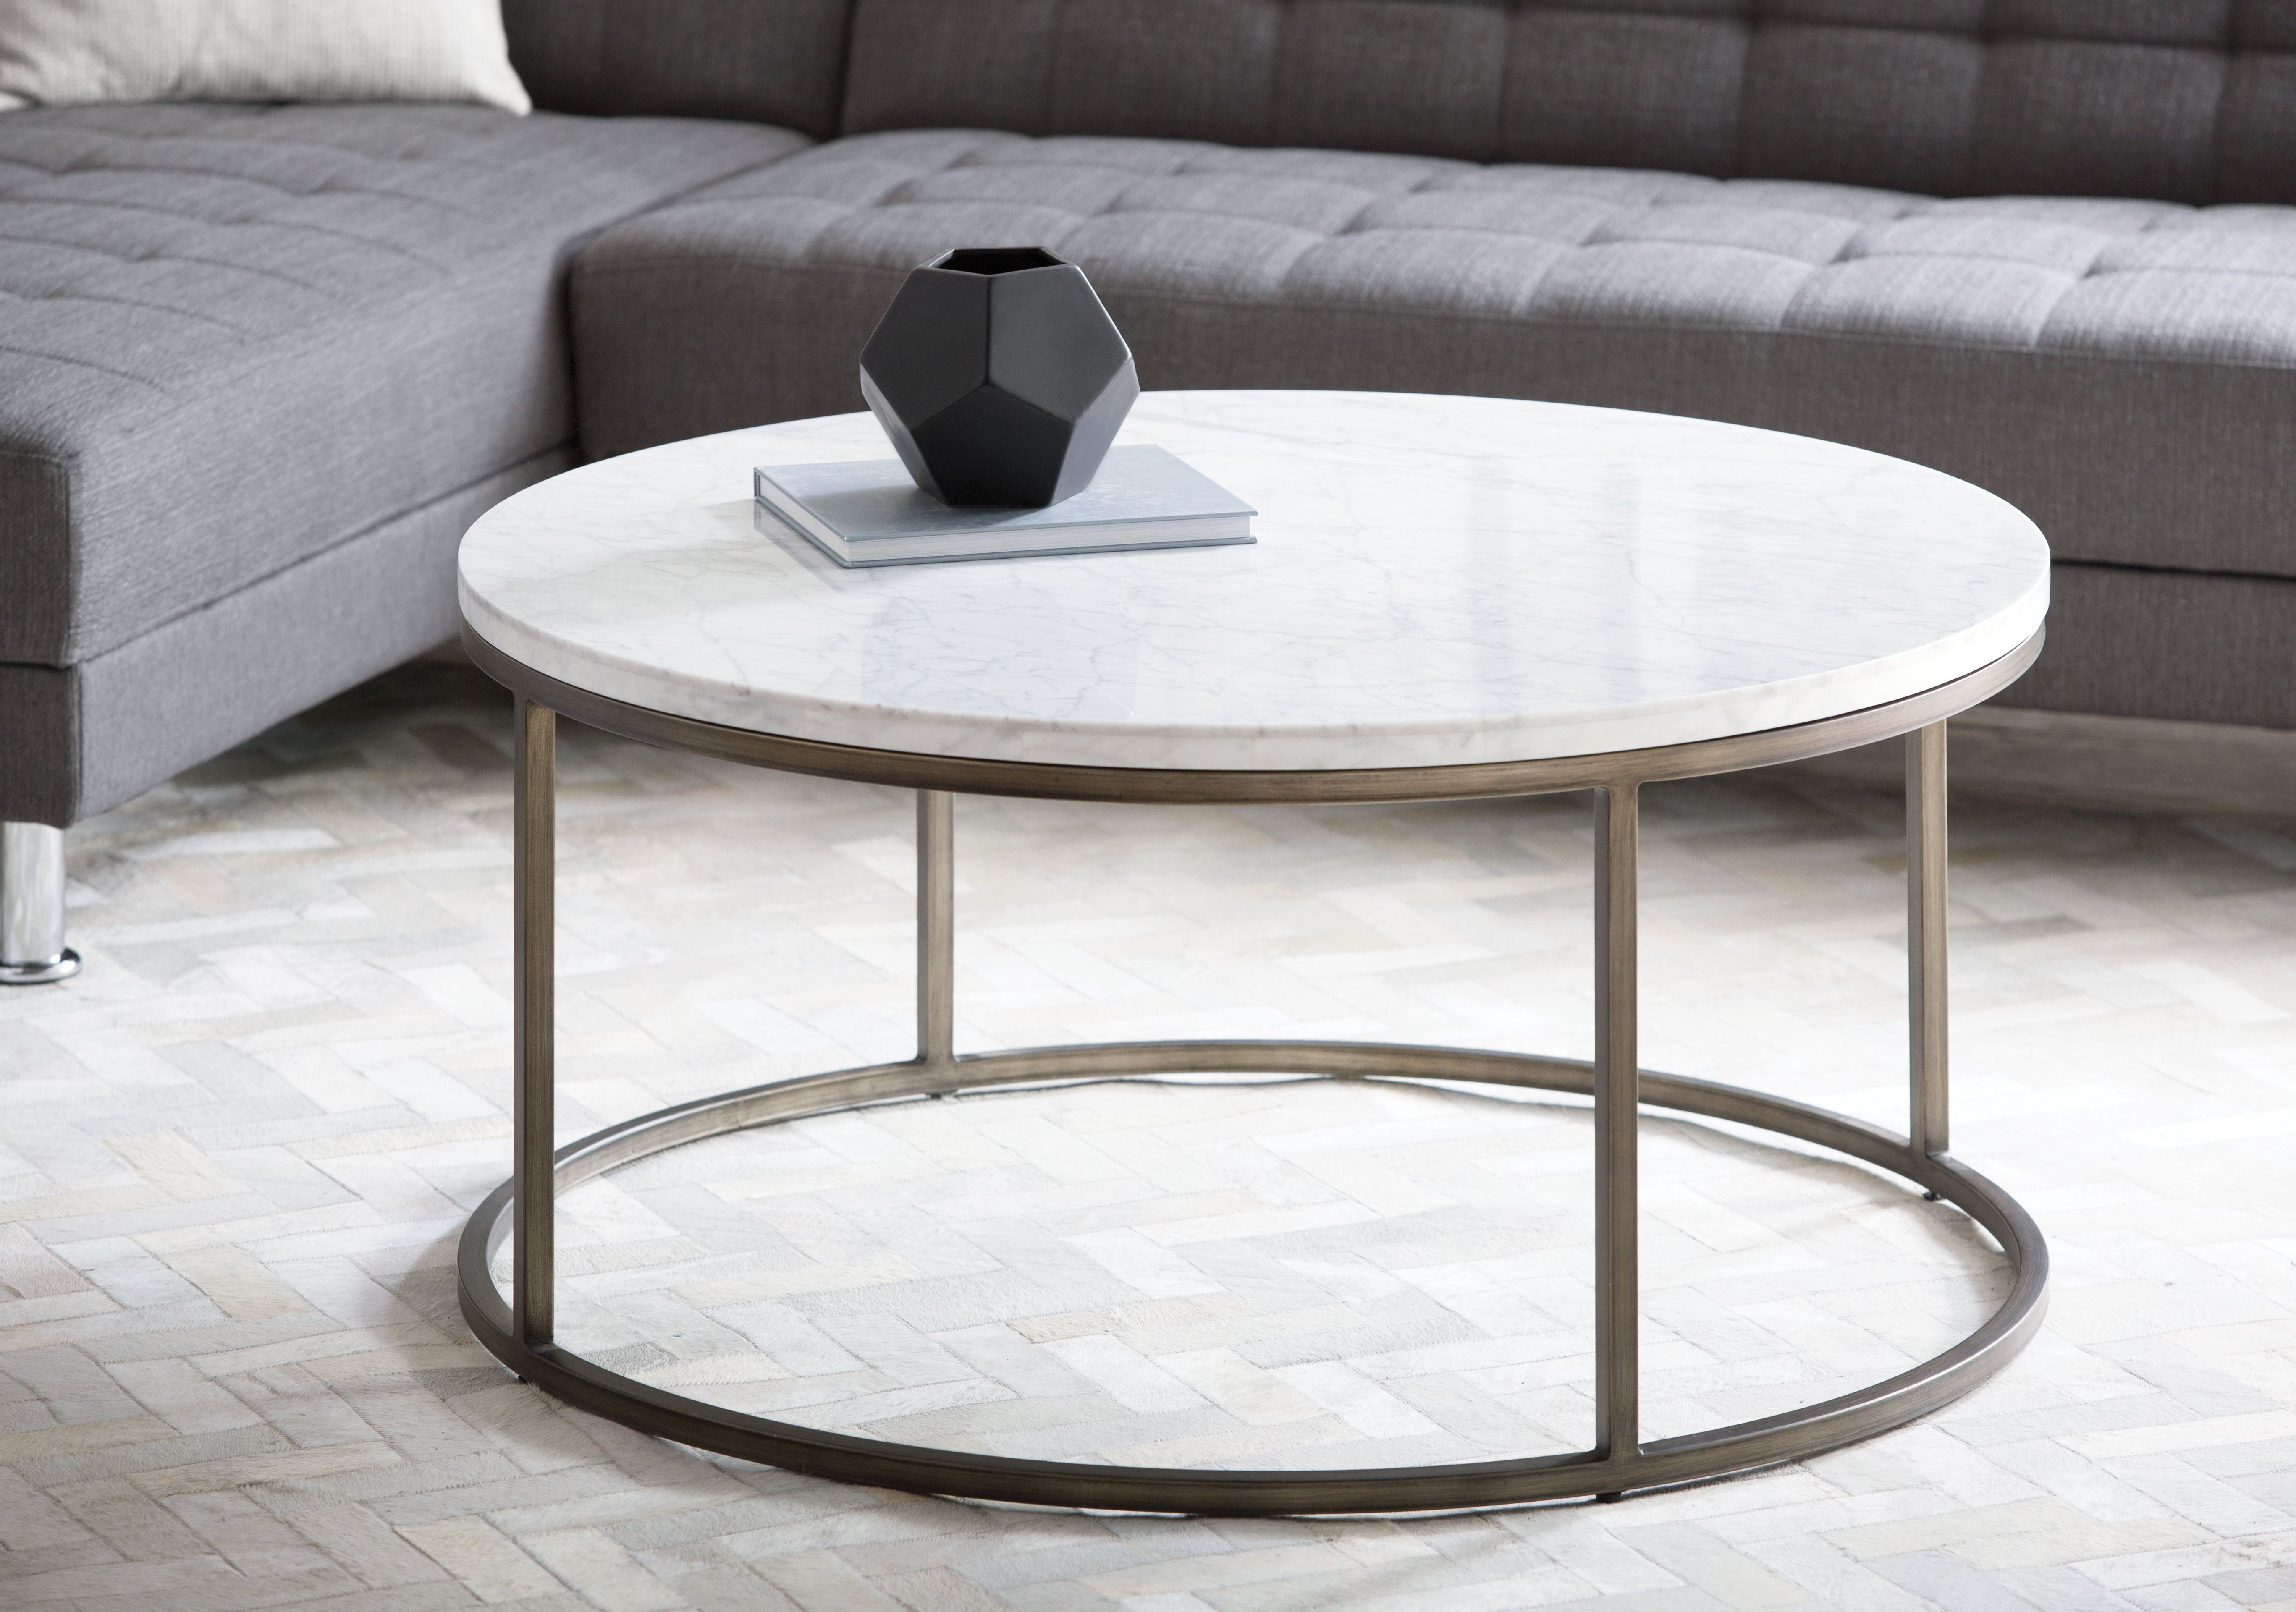 Louisa Coffee Table Coffee Table Circle Coffee Tables Round Coffee Table [ 3840 x 5468 Pixel ]